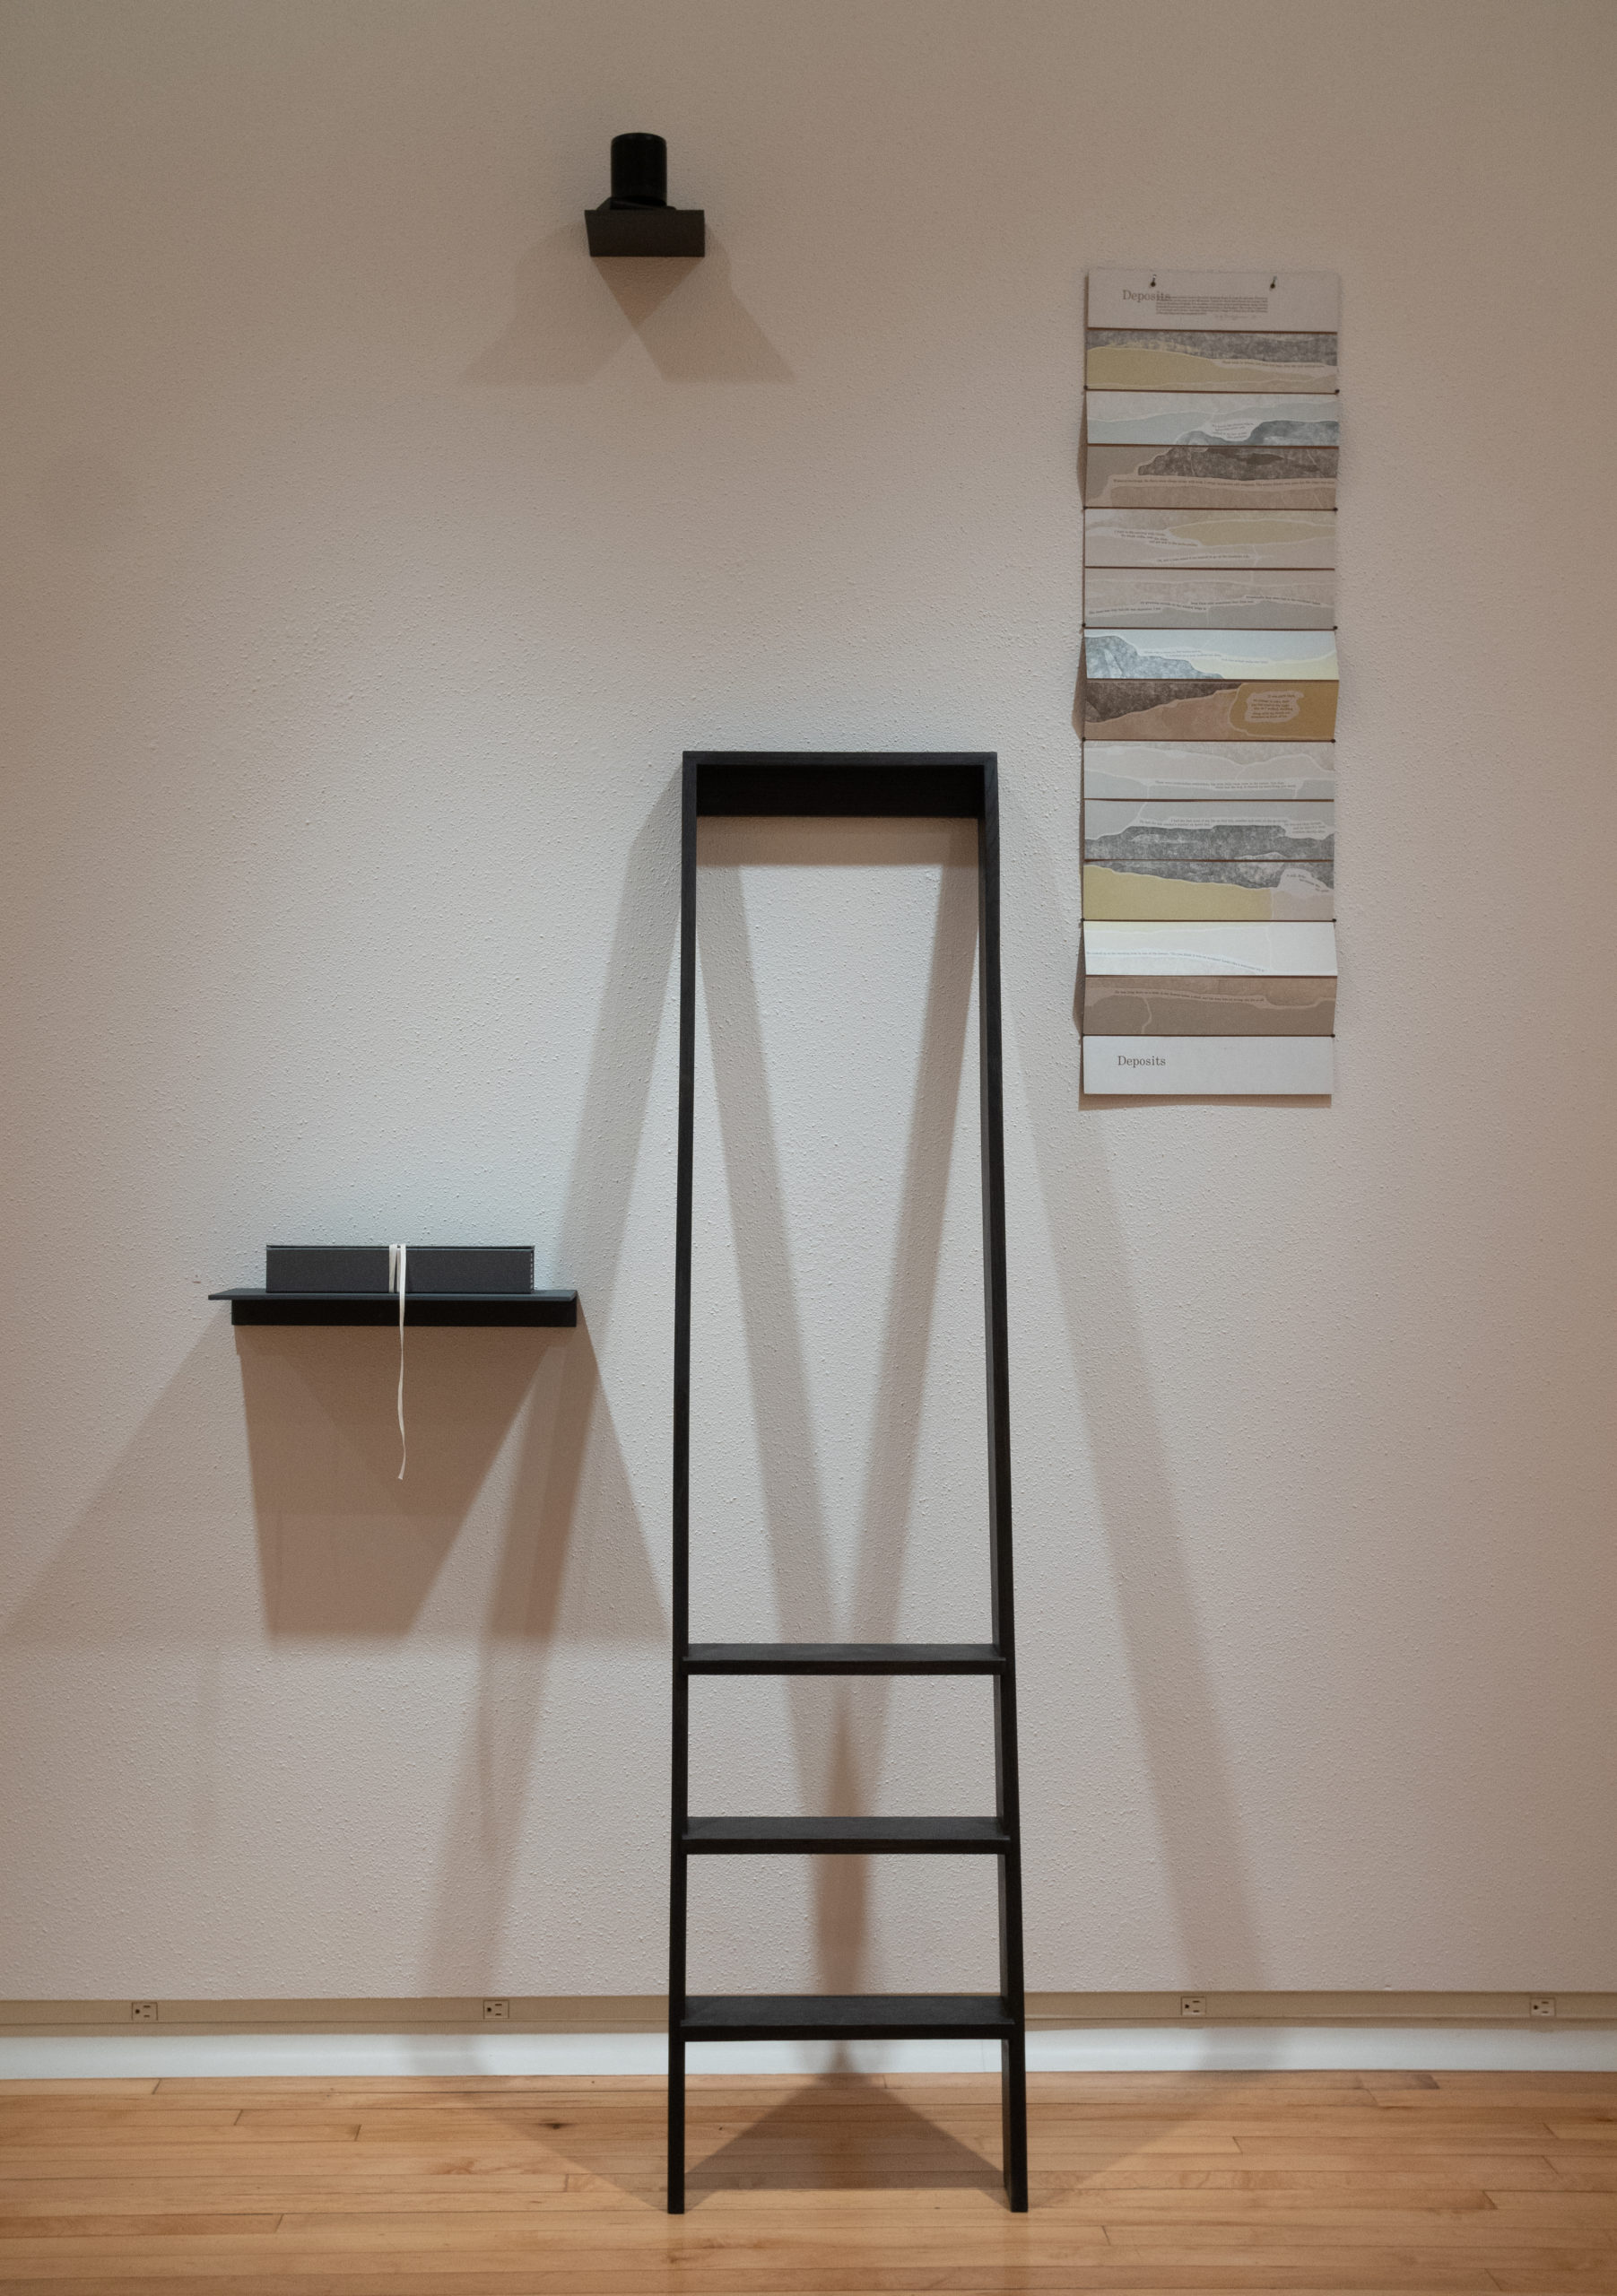 ladder leans against the wall with accordion artist's book hanging beside it